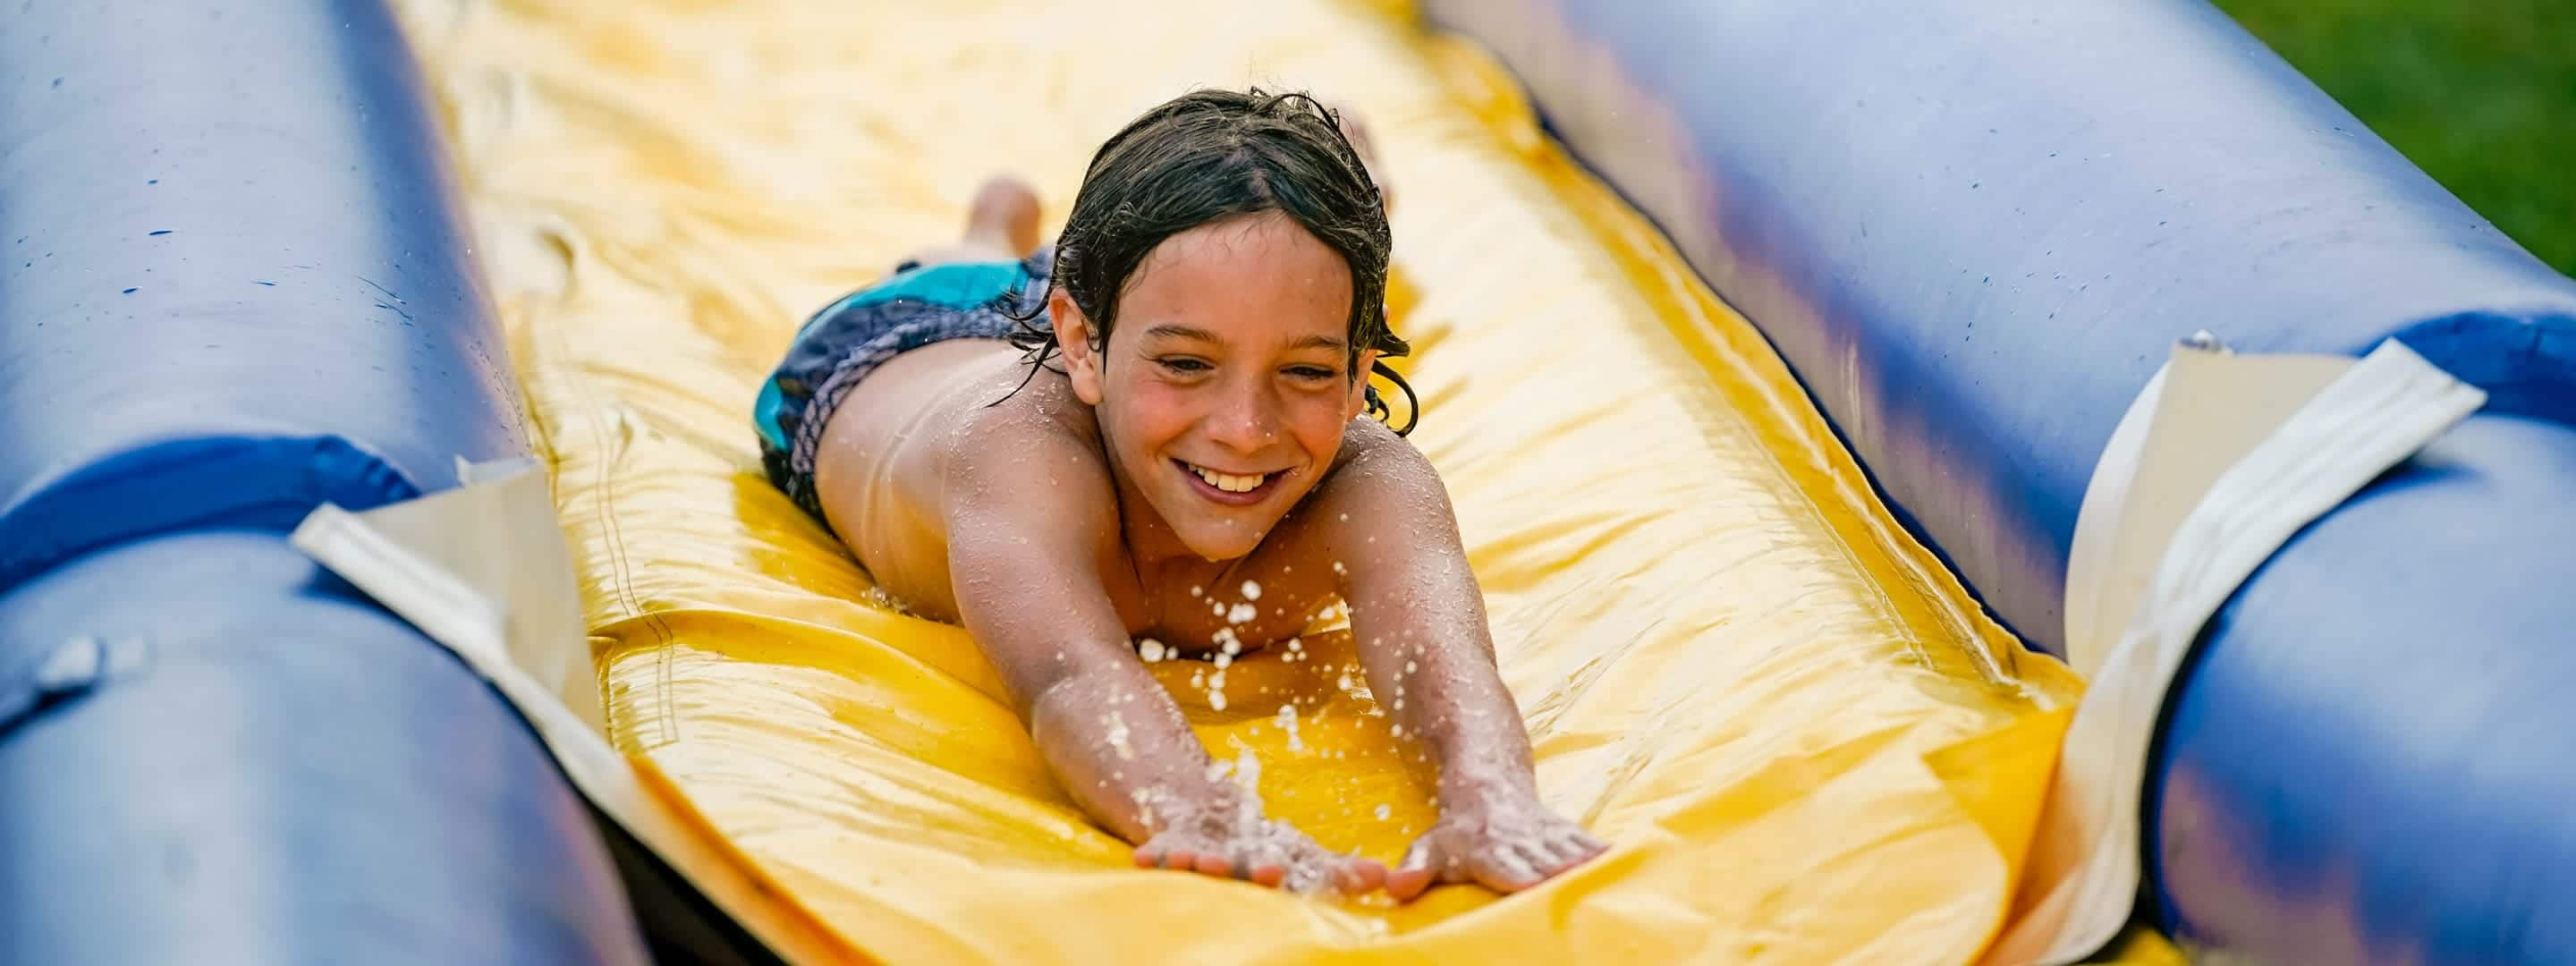 young kid sliding on a slip and slide